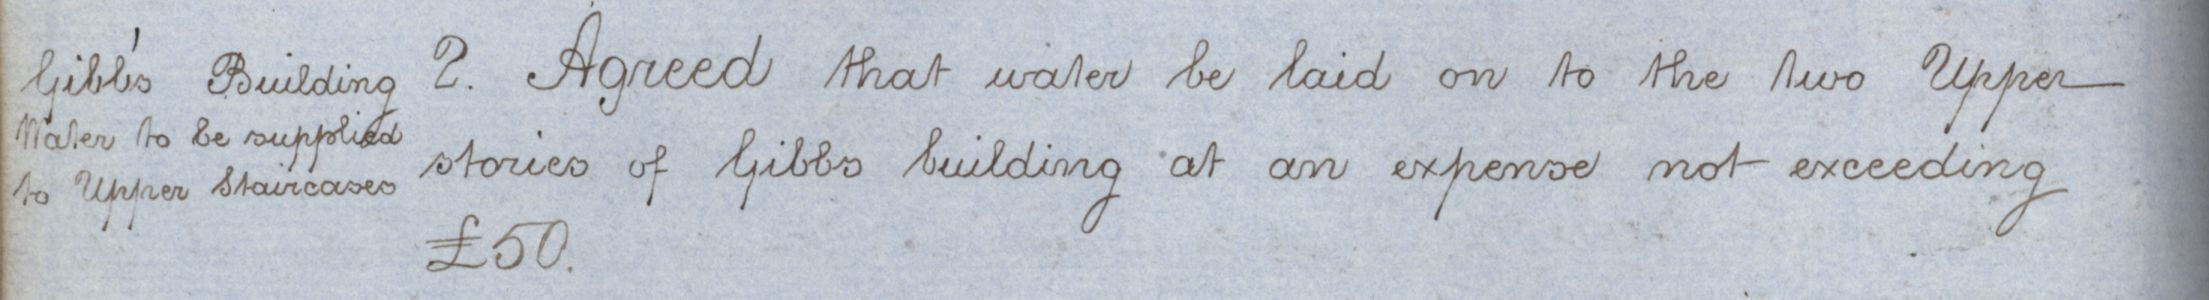 Agreement to supply water to the staircases of the Gibbs building, Congregation minutes, 21 June 1860. [KCGB/4/1/1/6]